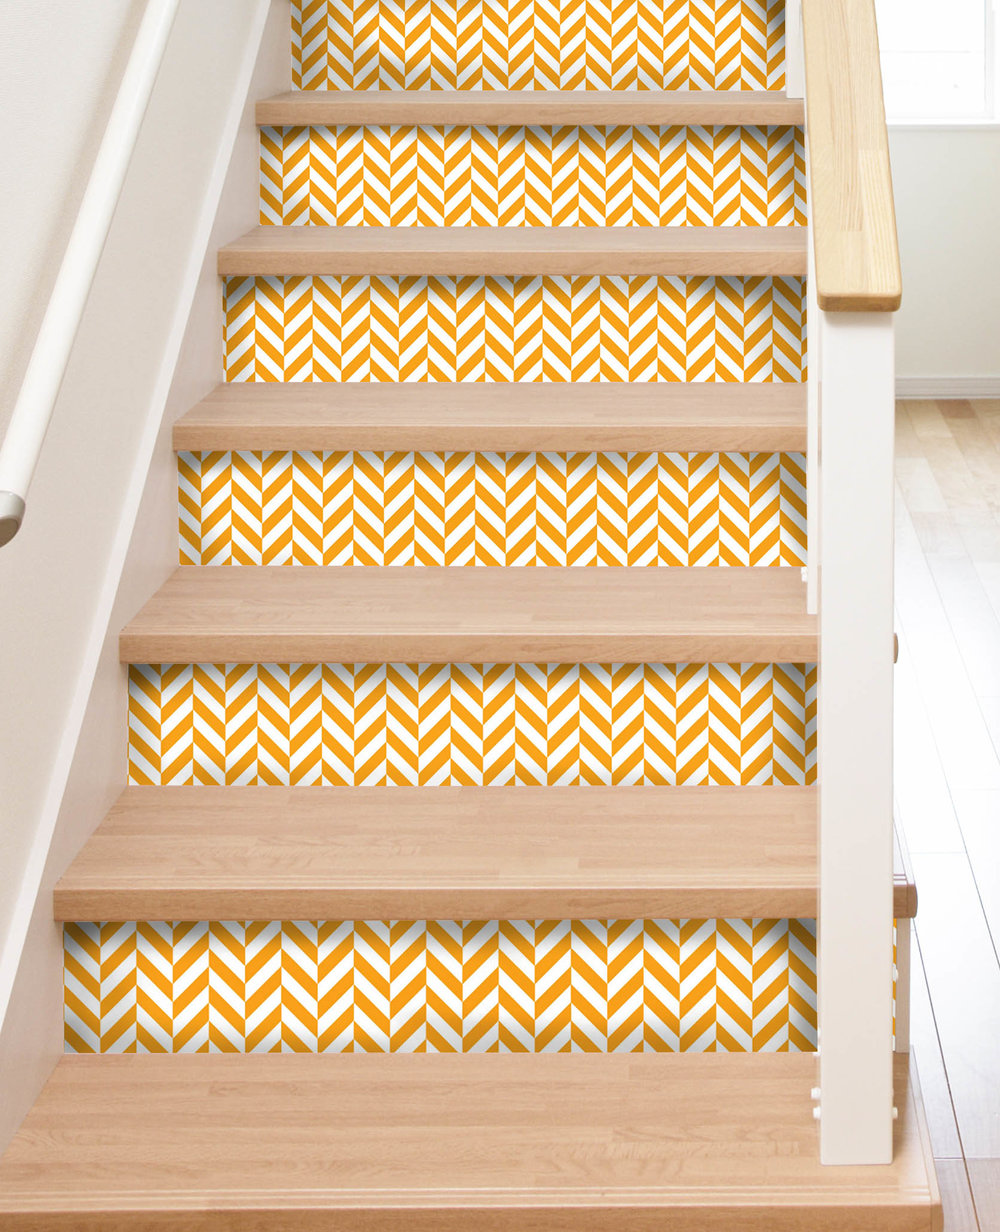 Peel and Stick Stair Riser Decals — Mirth Studio